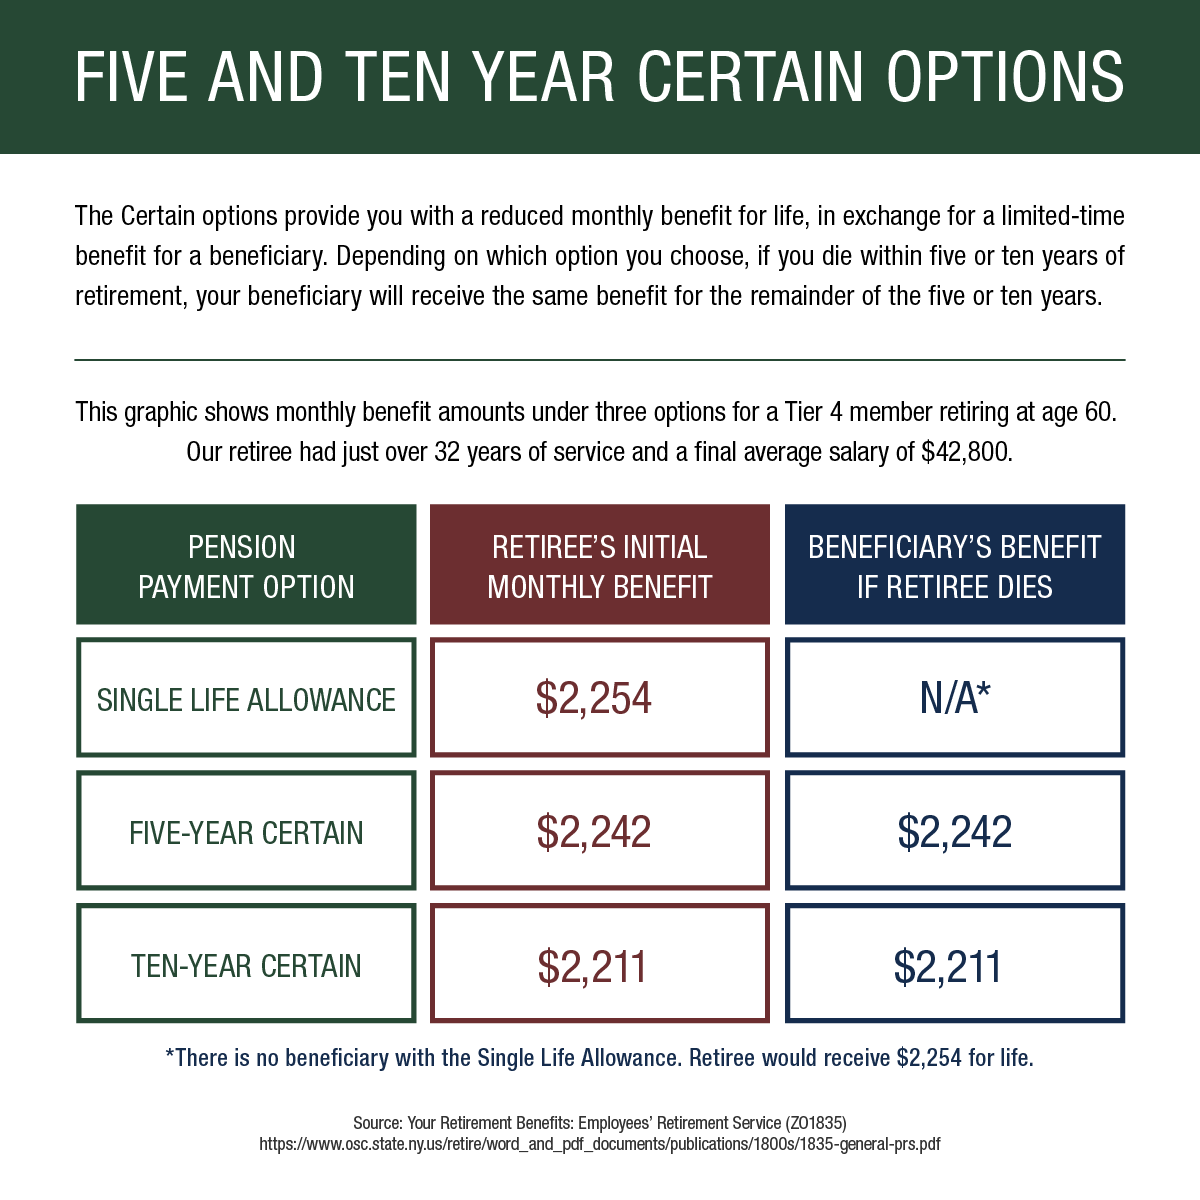 pension payment options